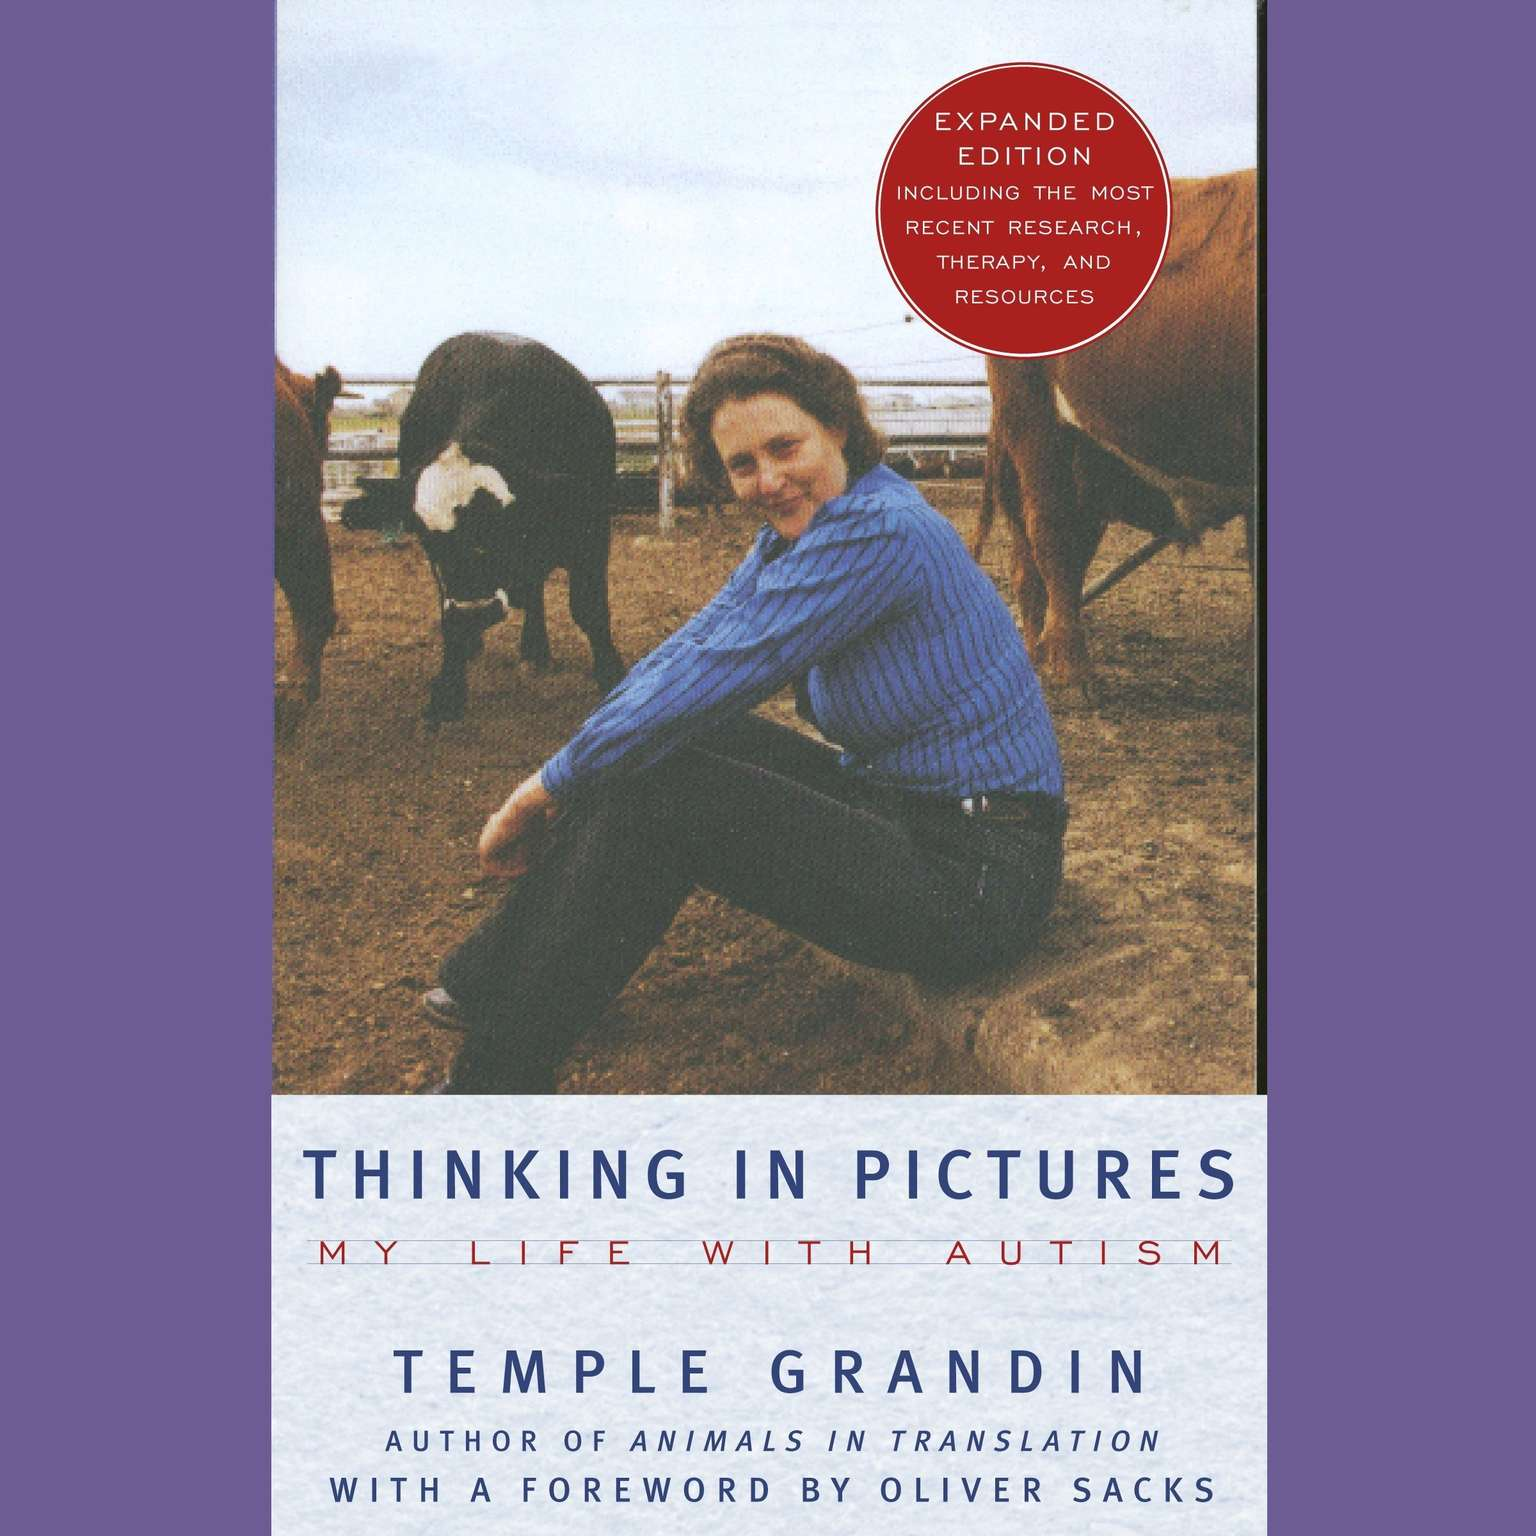 thinking in pictures audiobook by temple grandin